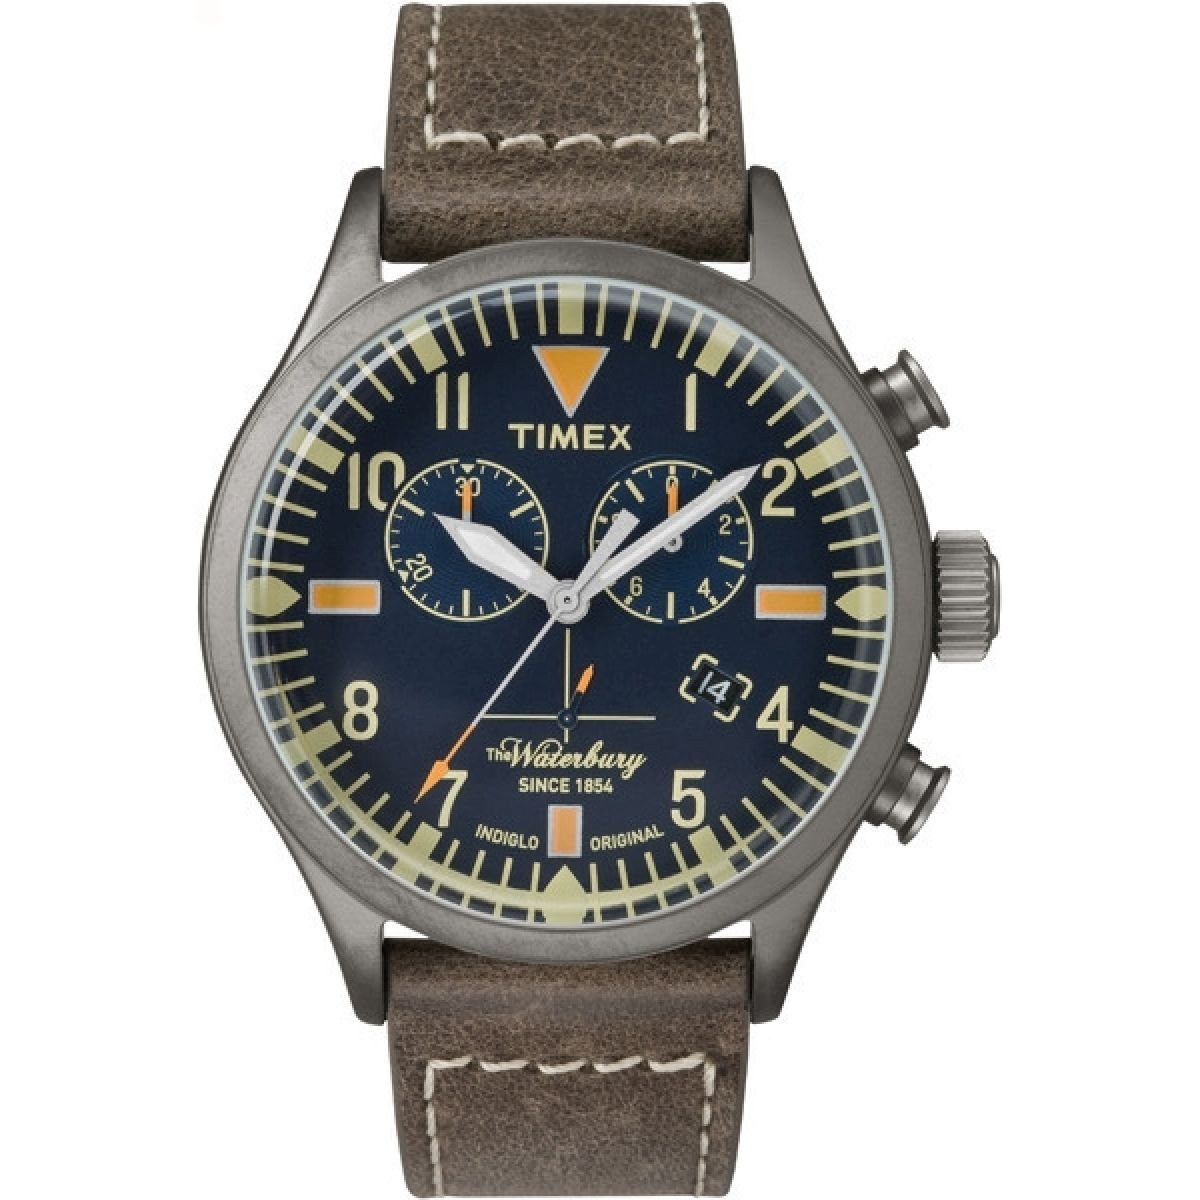 Timex Originals TW2P84100 Mens Waterbury Brown Leather Strap Chronograph Watch by Timex